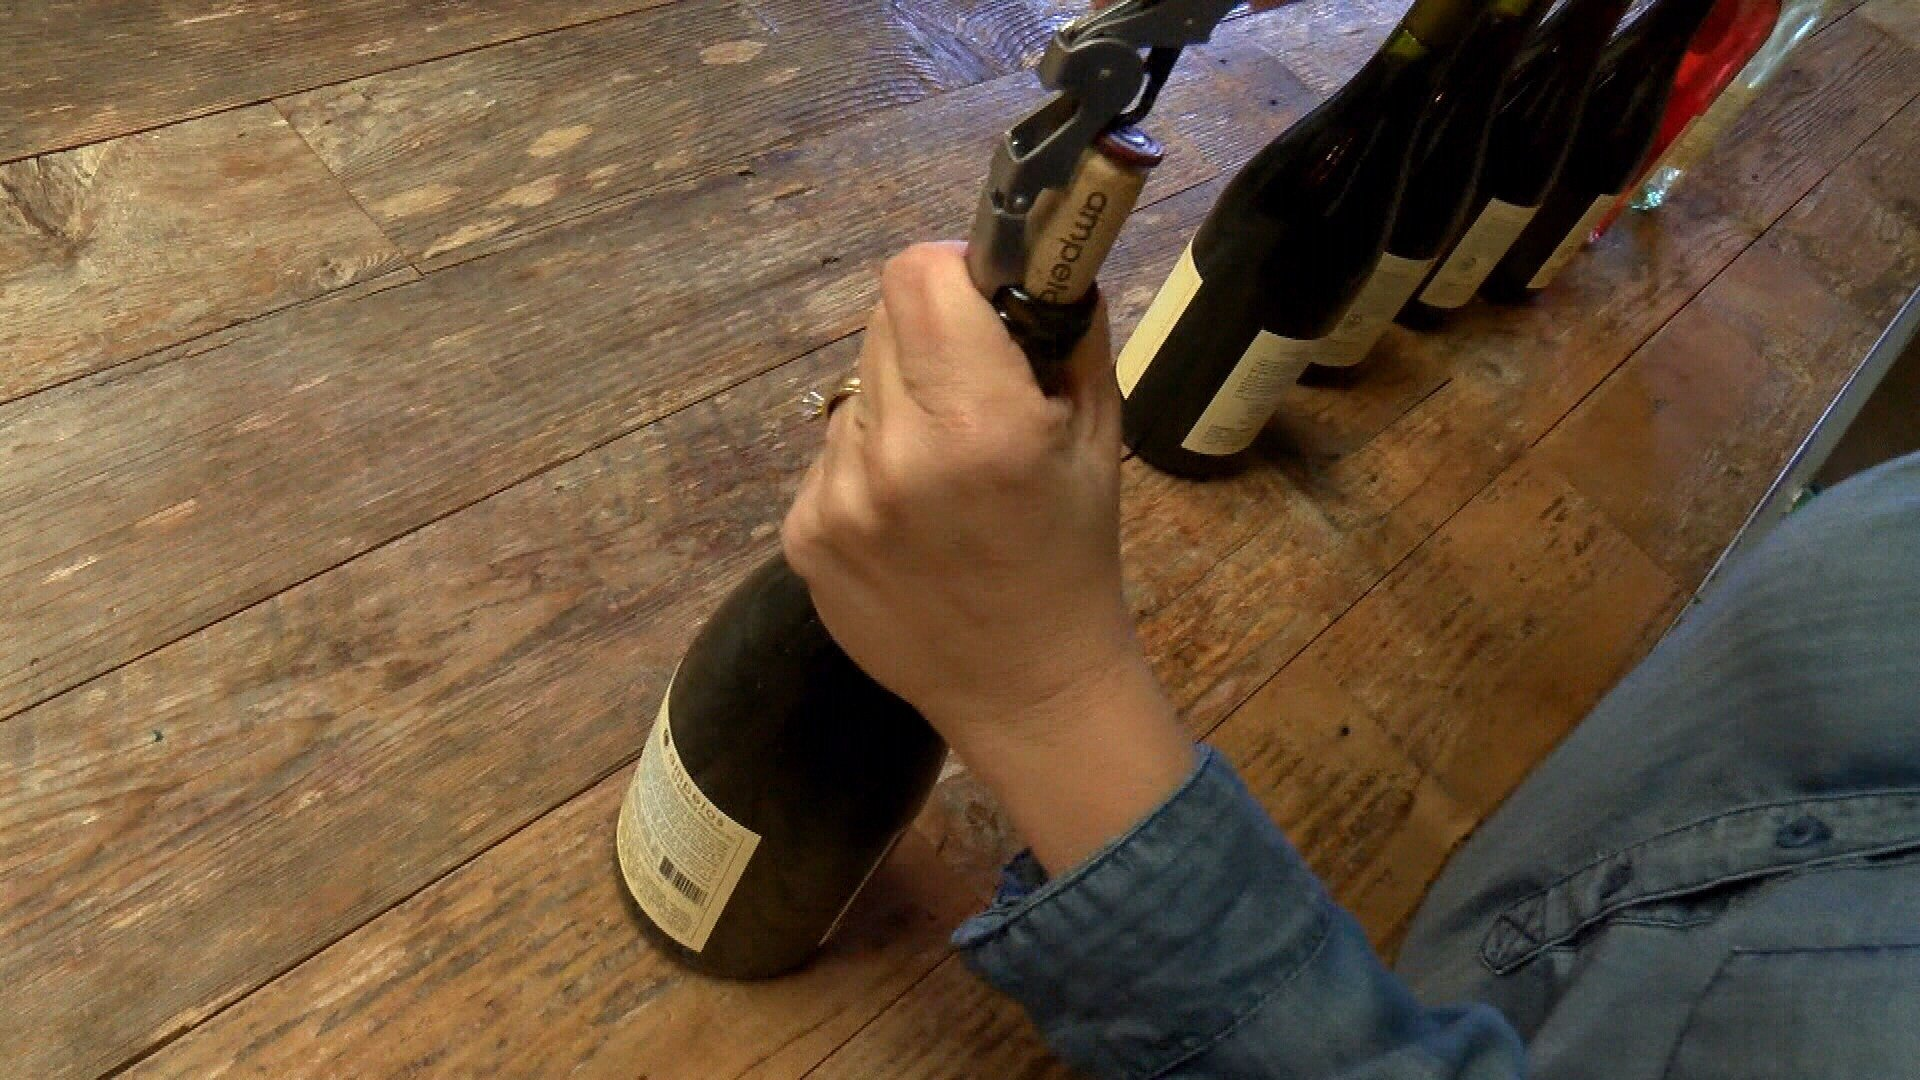 Popping corks at Lompoc's Wine Ghetto (KSBY photo)